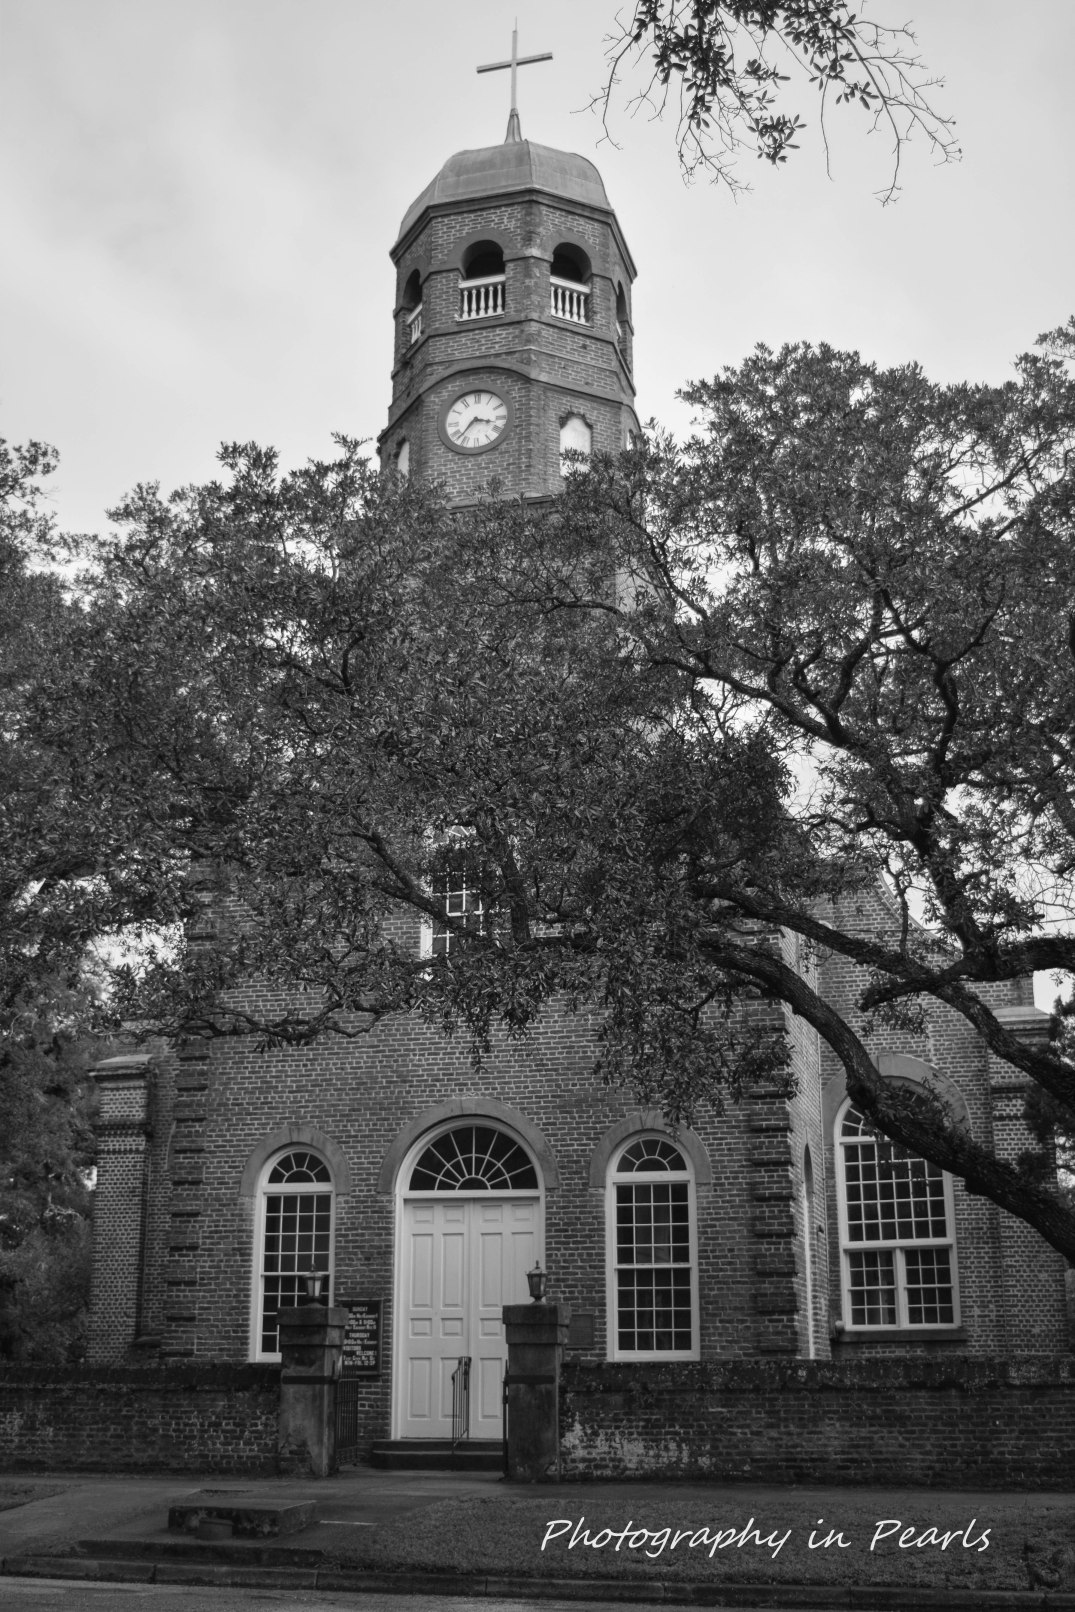 Prince George Episcopal Church 1721